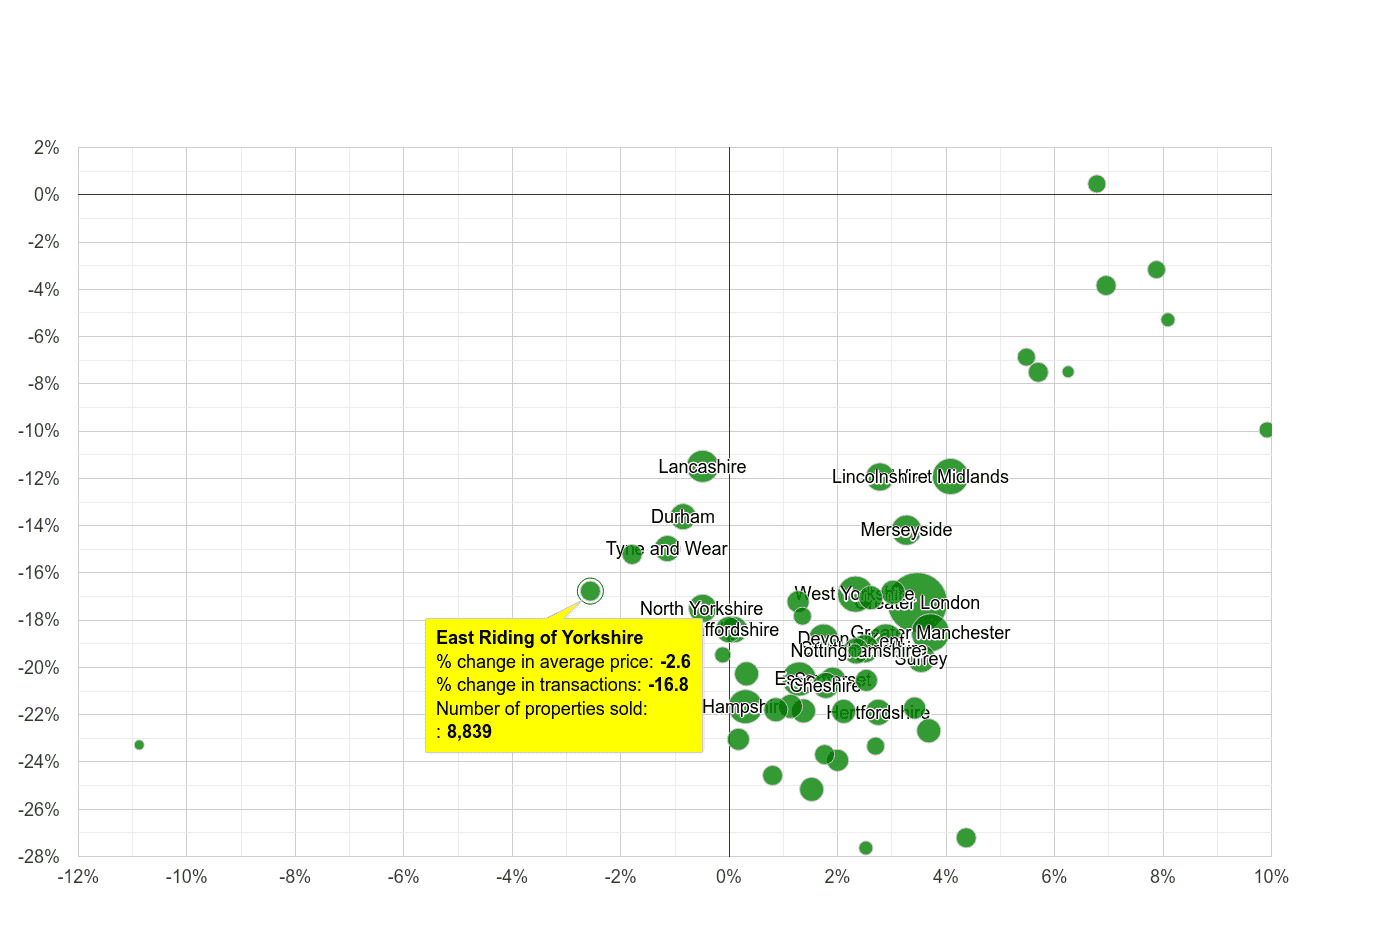 East Riding of Yorkshire property price and sales volume change relative to other counties